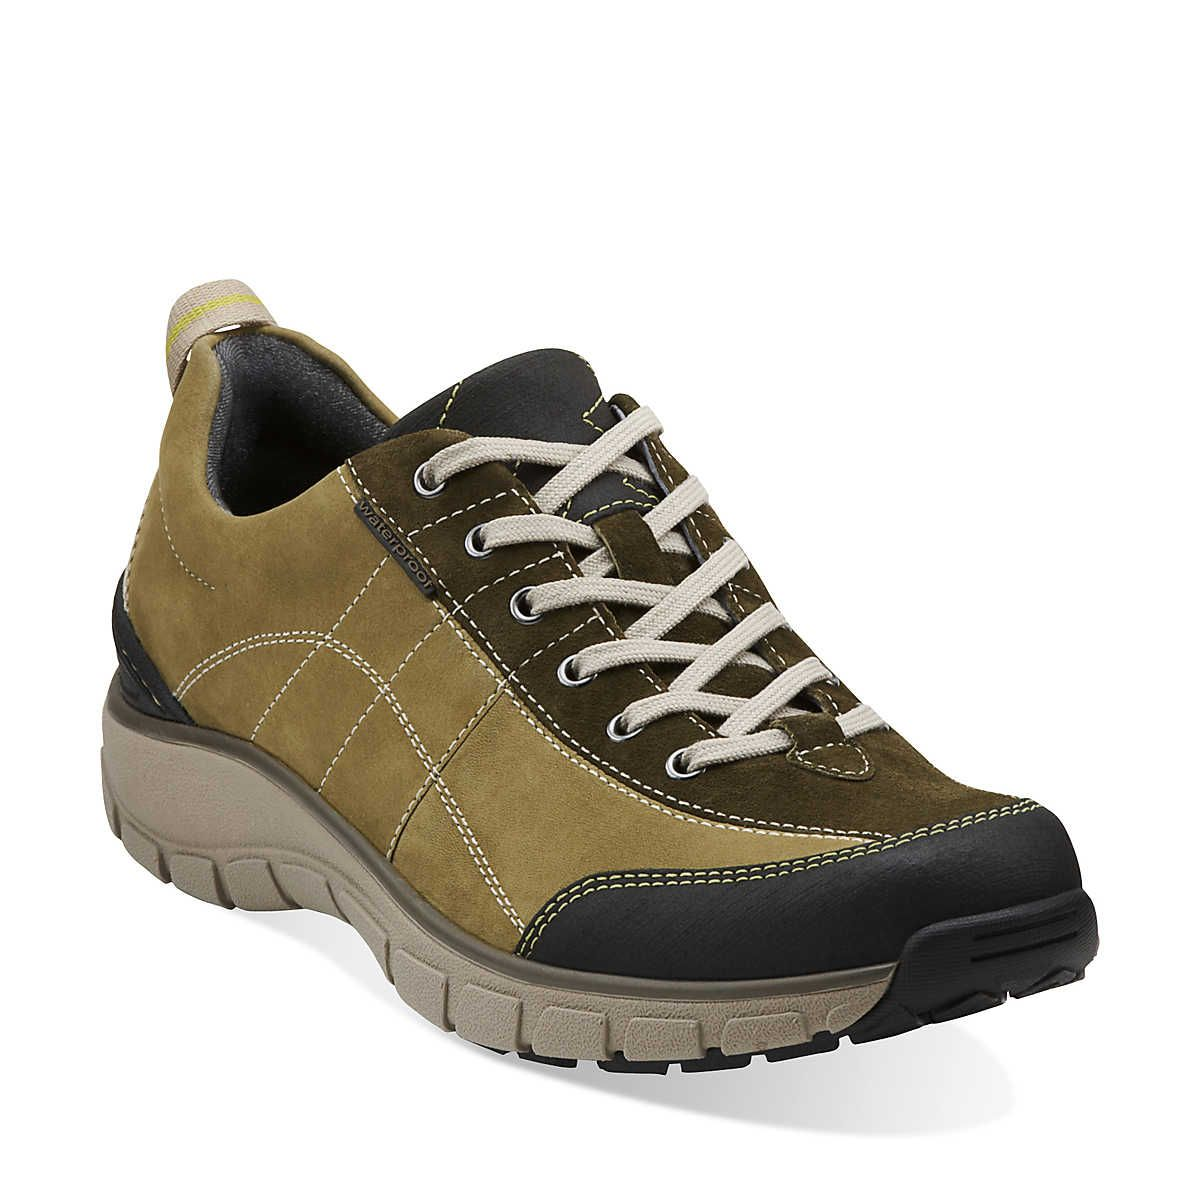 Rivers Stores Hiking Shoes